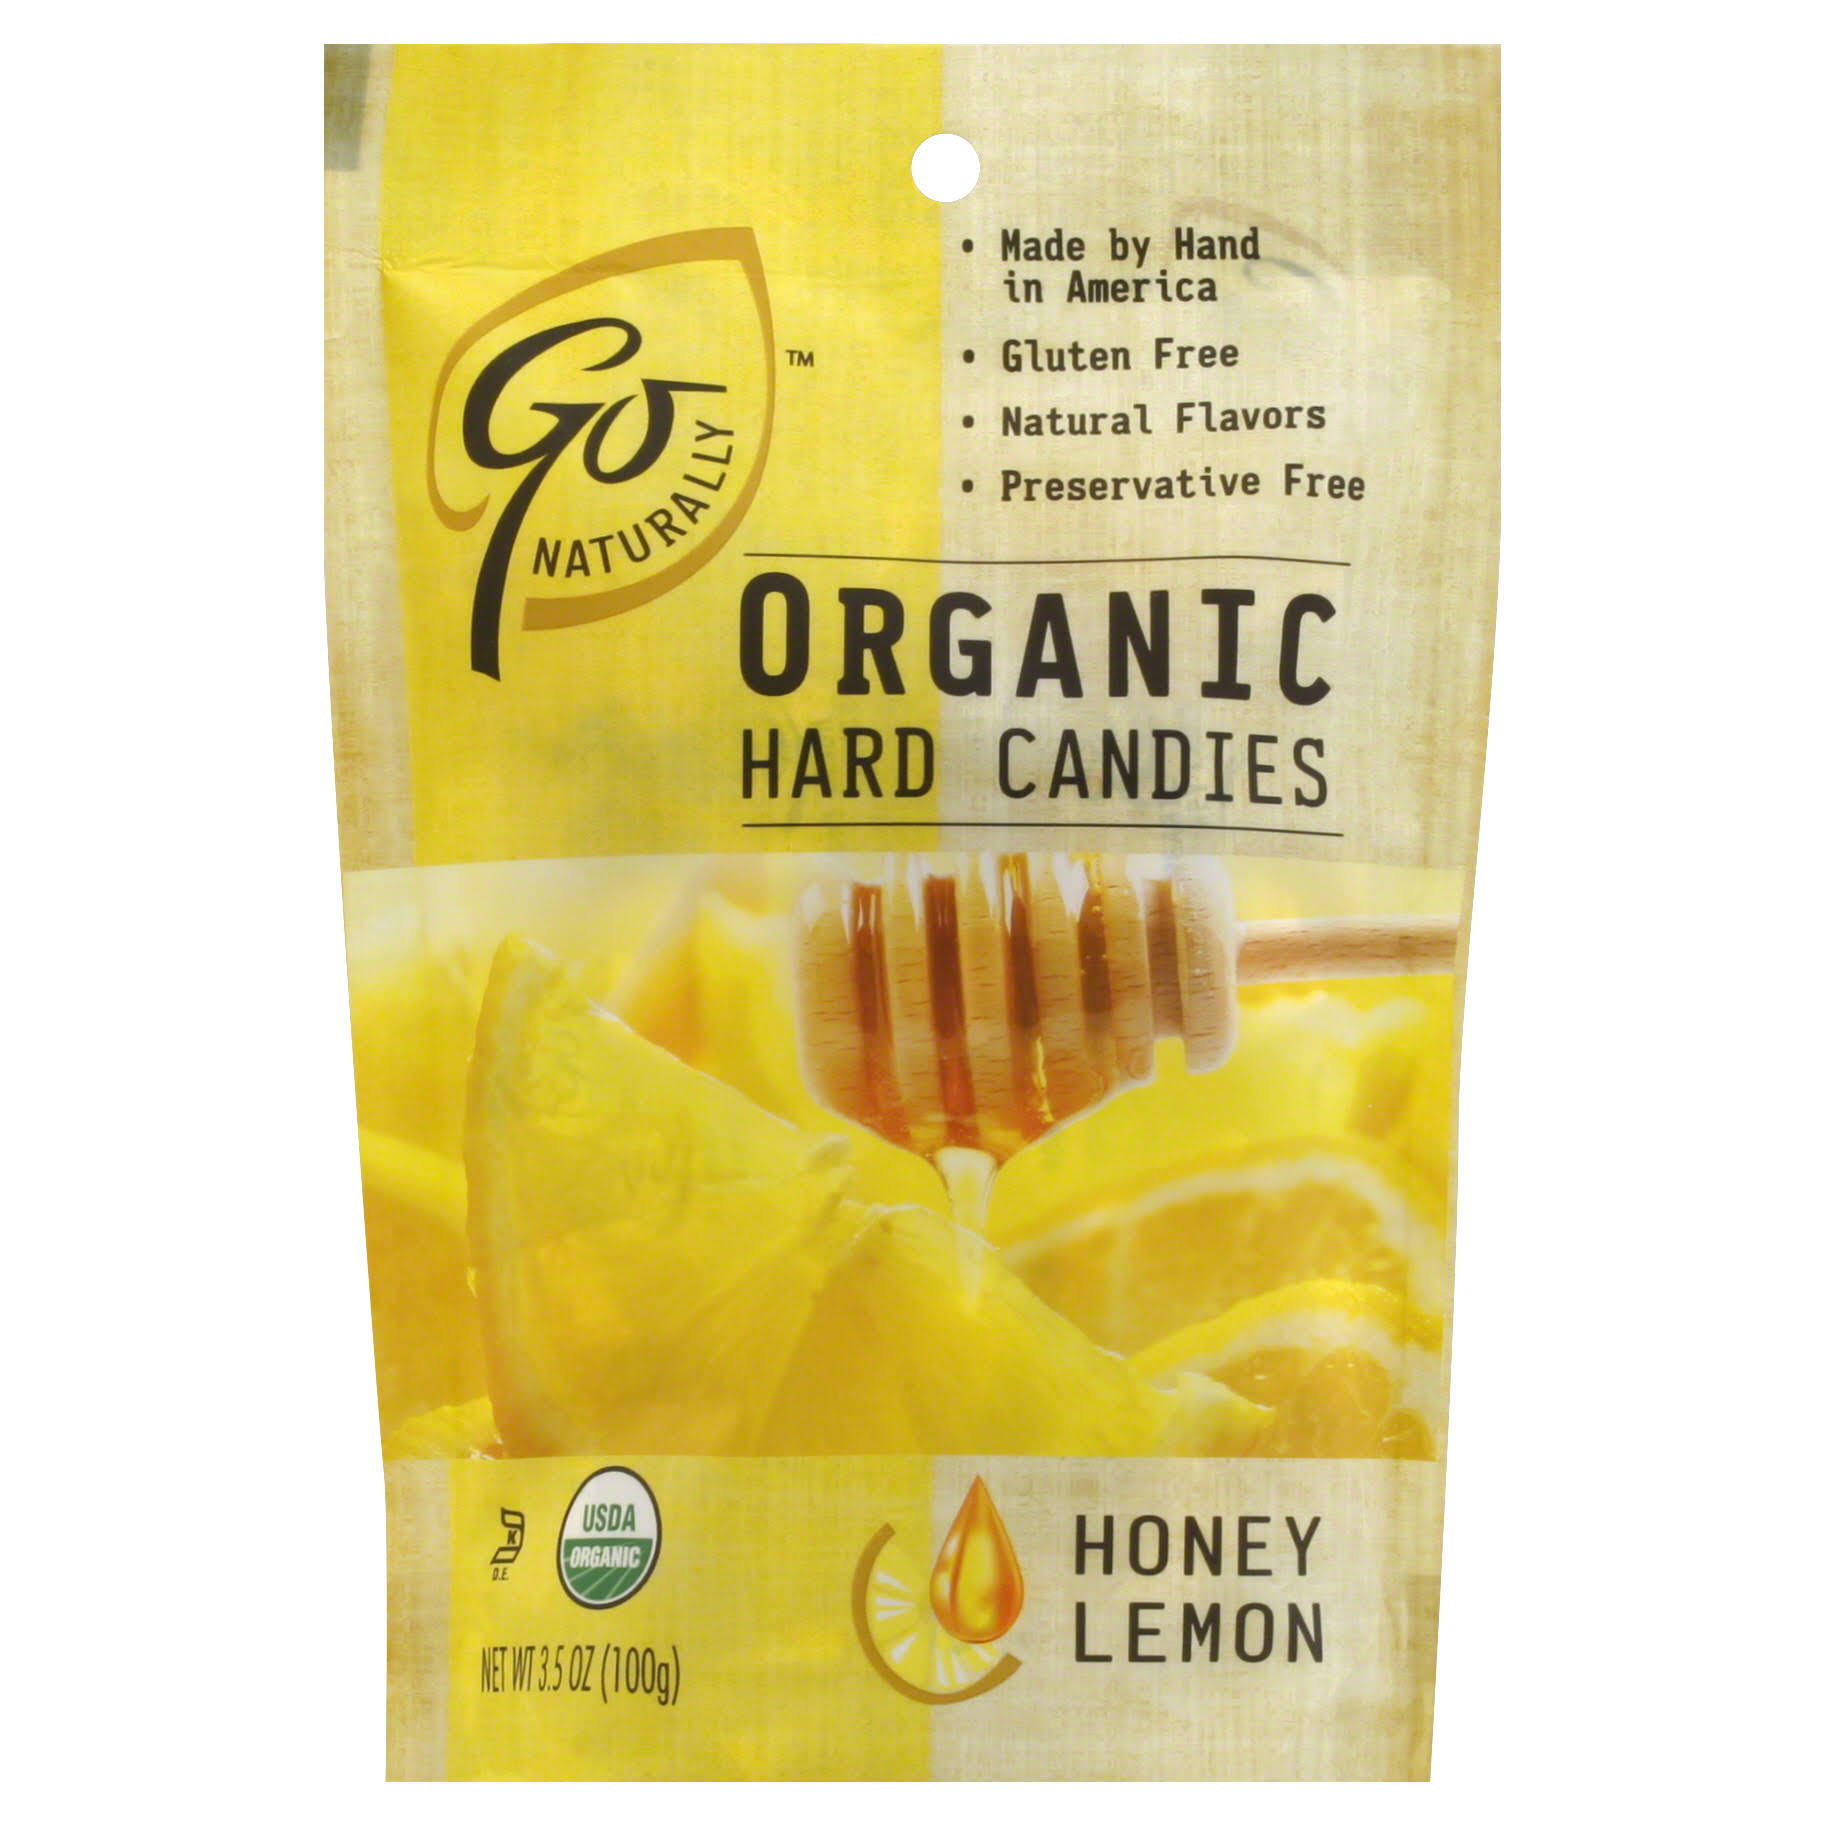 Organic Gluten Free Hard Candies - Honey Lemon